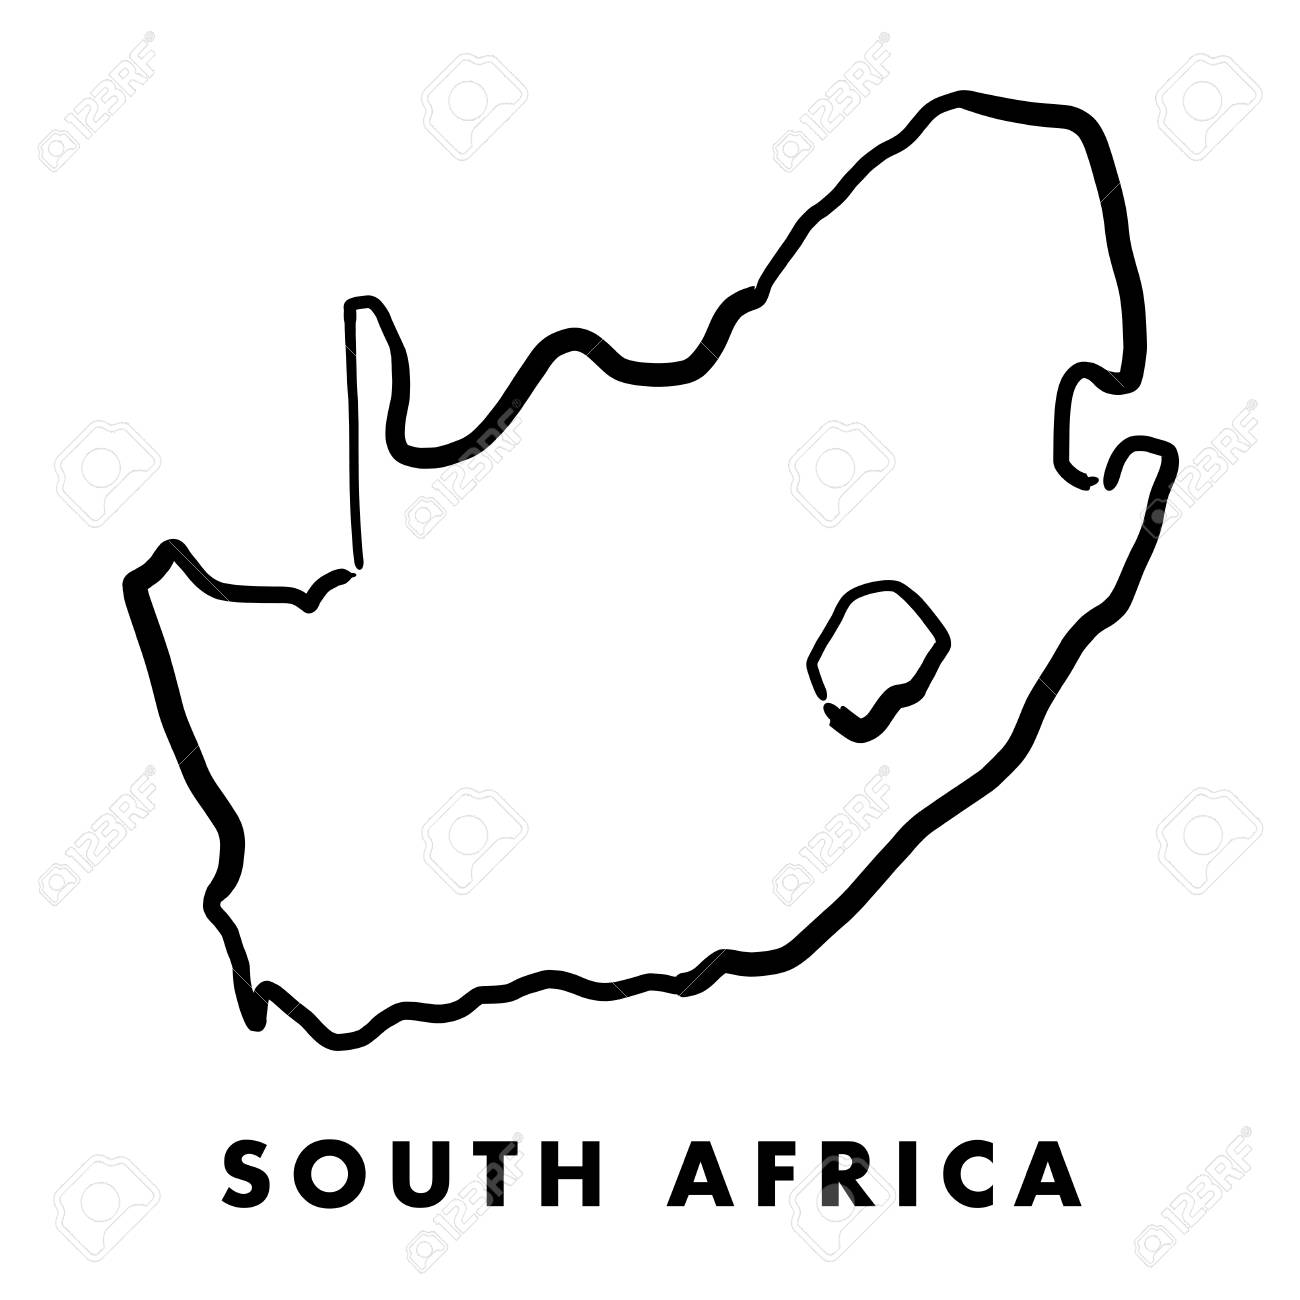 Picture of: South Africa Simple Map Outline Smooth Simplified Country Shape Royalty Free Cliparts Vectors And Stock Illustration Image 89179521